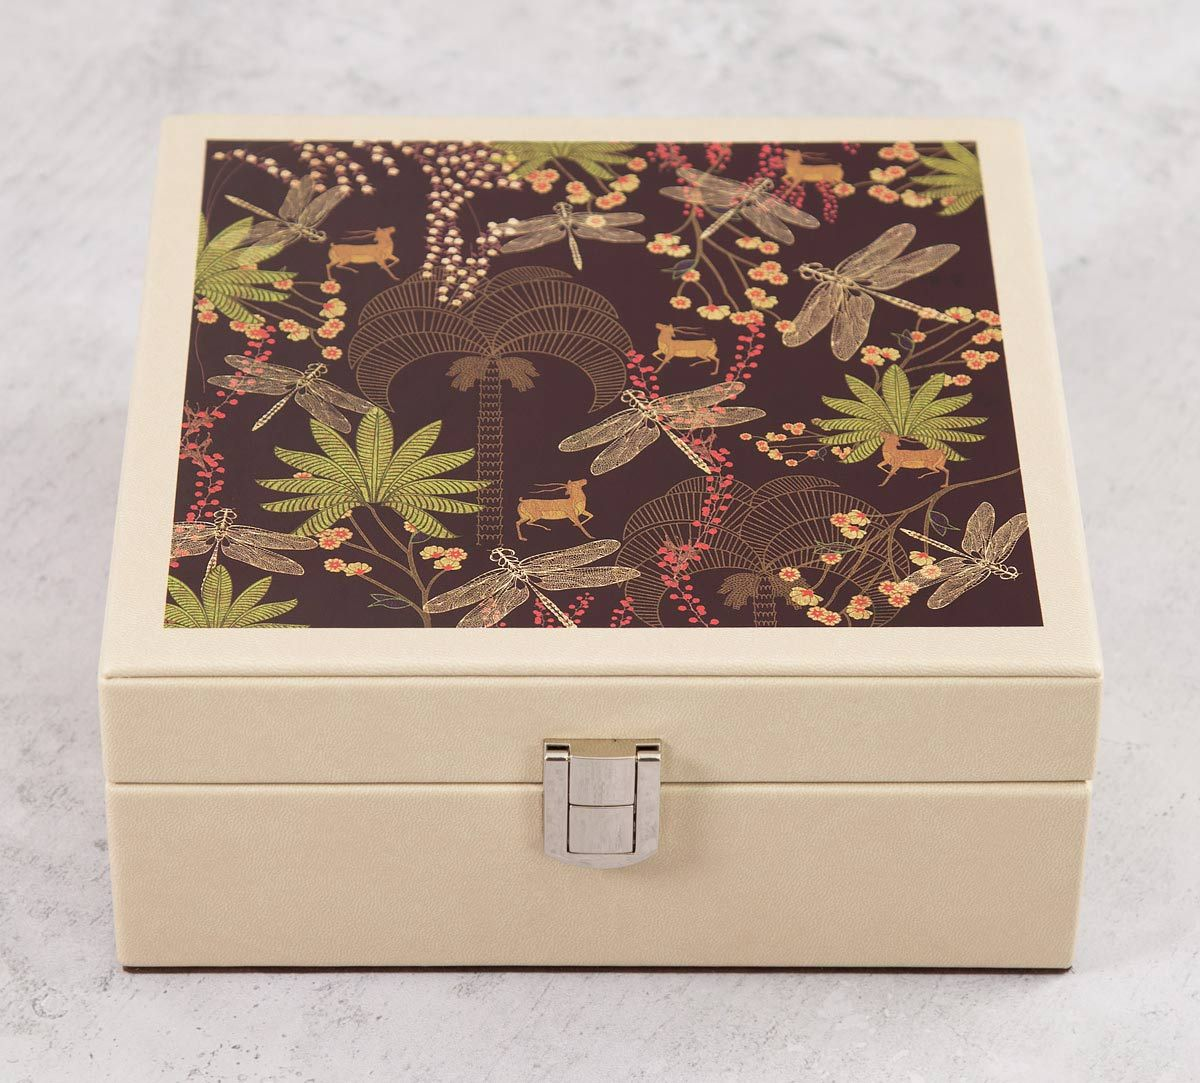 India Circus Palmeria Bloomer Leather Jewellery Box